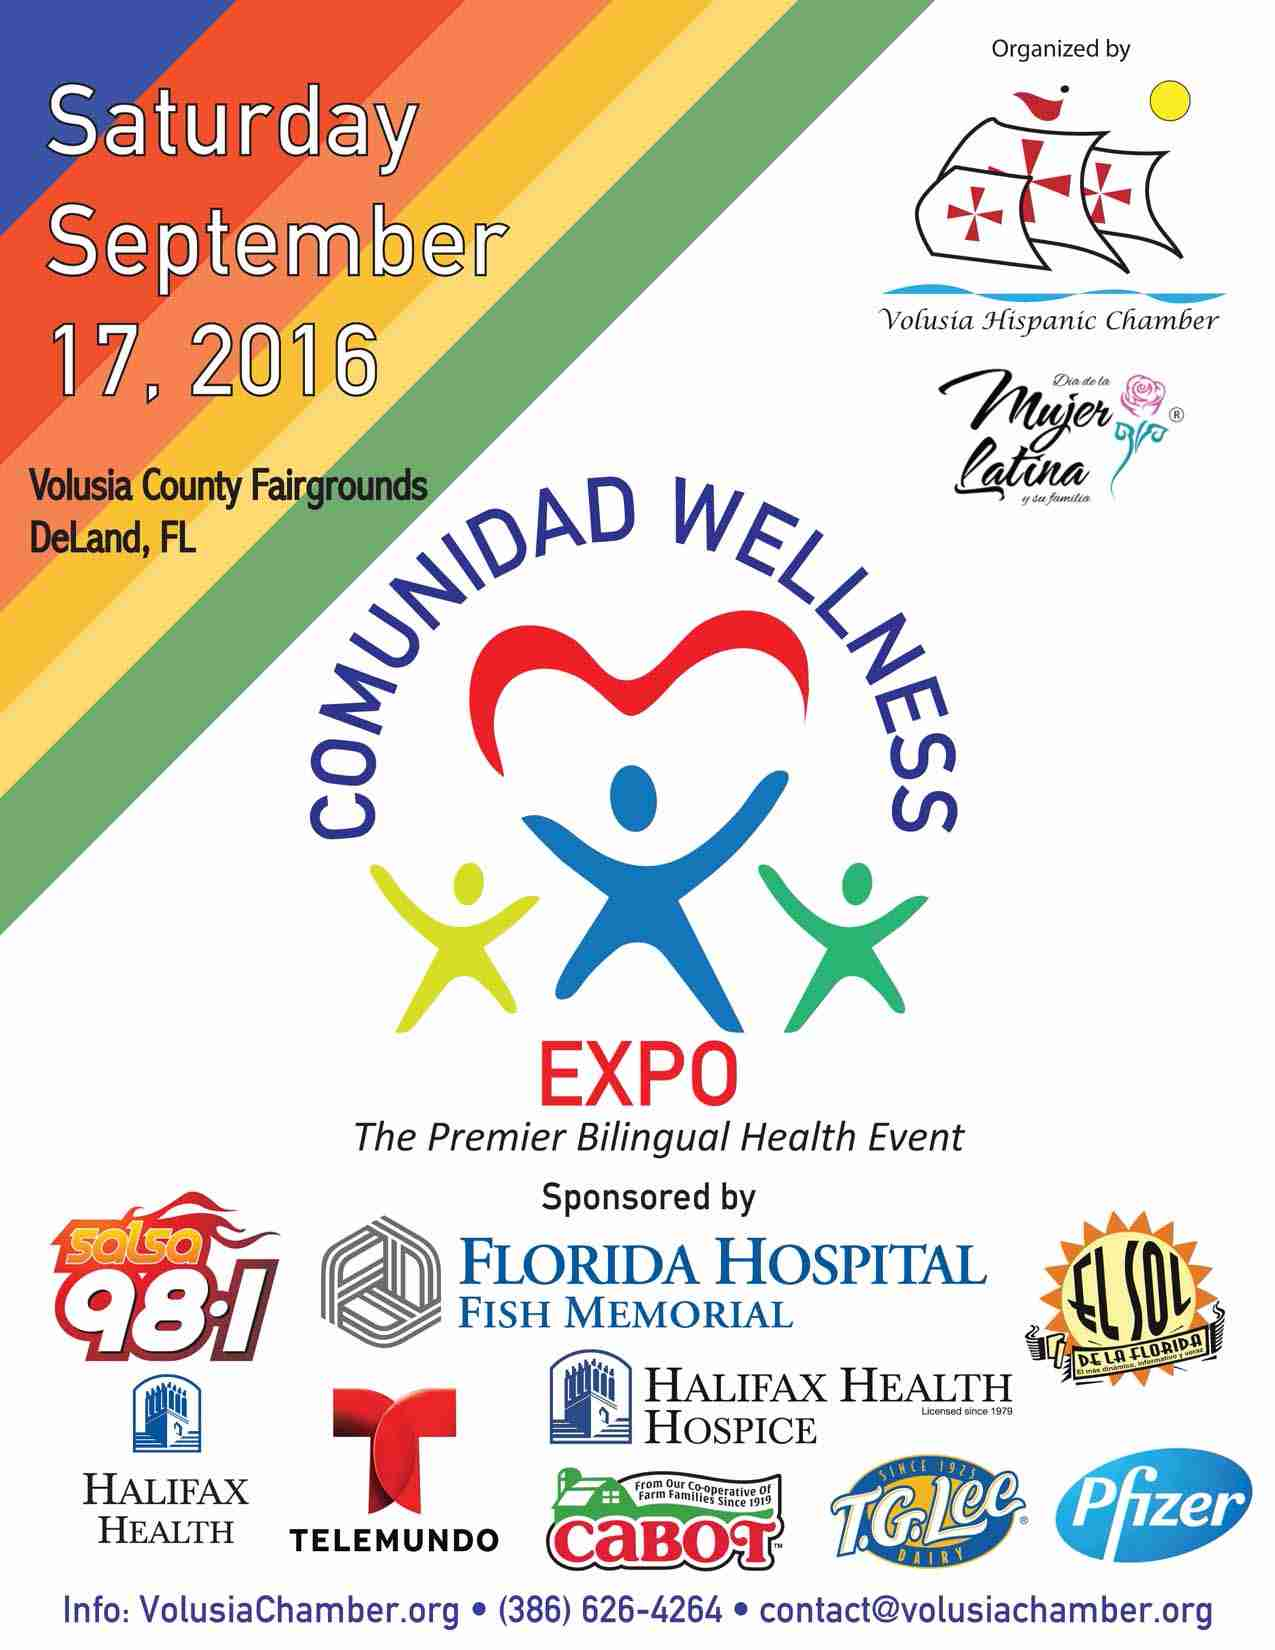 Comunidad Wellness Expo